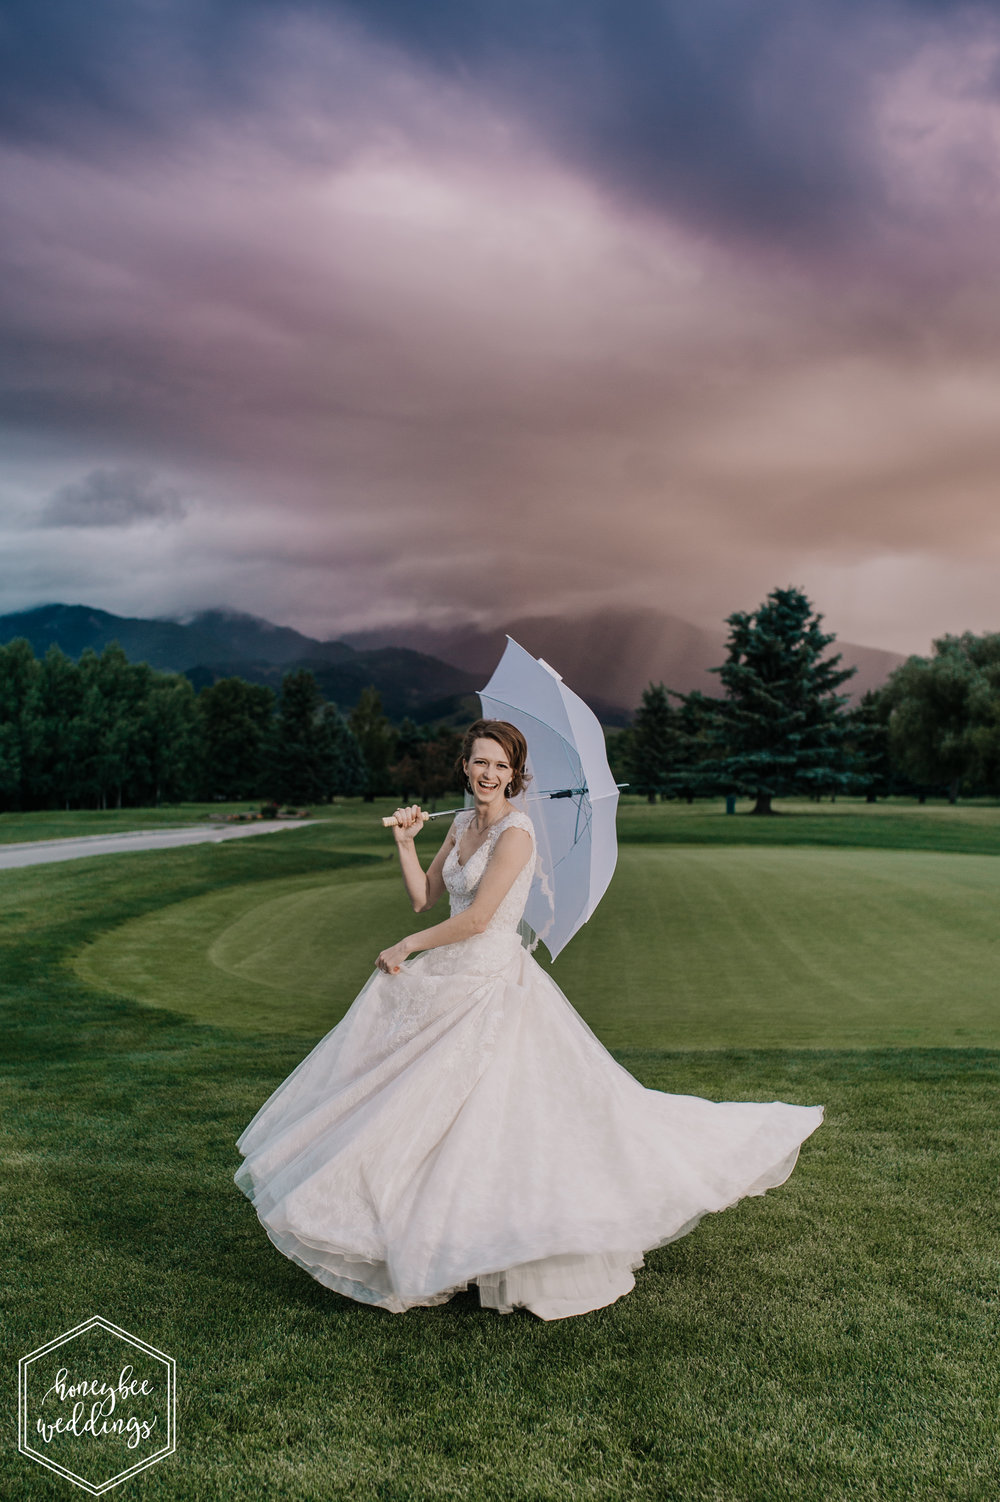 920 Riverside Country Club Wedding_Montana Wedding Photographer_Lauren Jackson + Evan Ivaldi 2018-8412.jpg